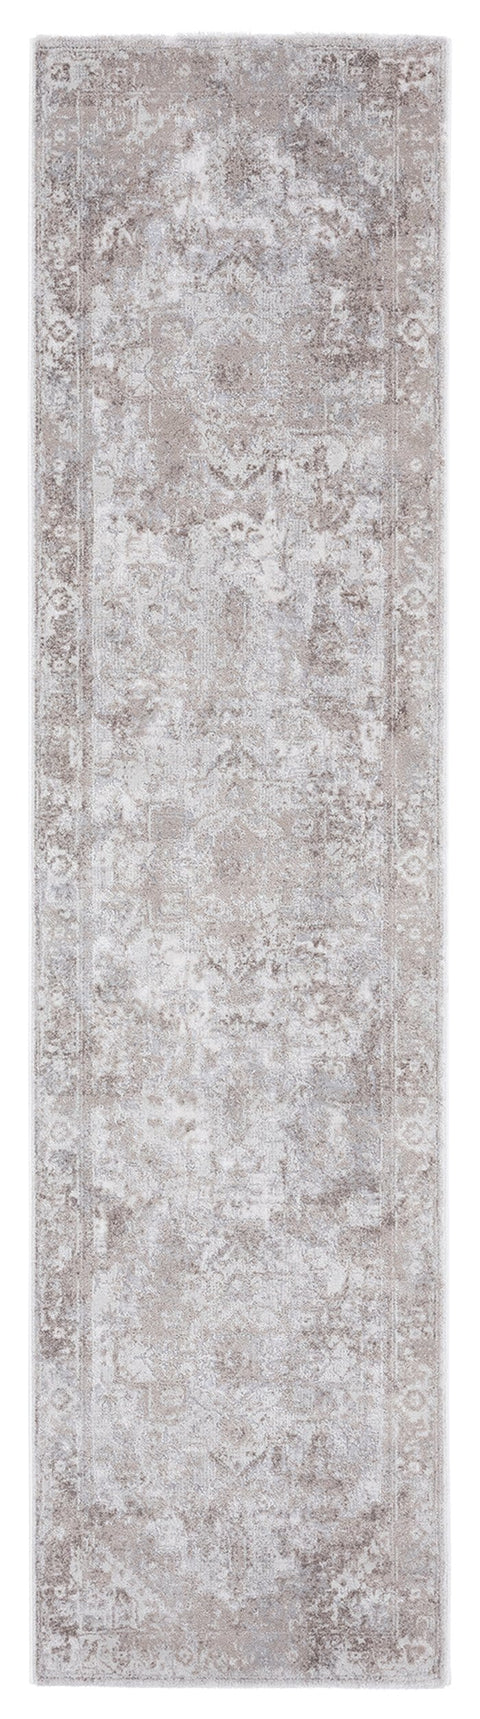 morgan-beige-brown-transitional-distressed-medallion-runner-rug-missamara.jpg